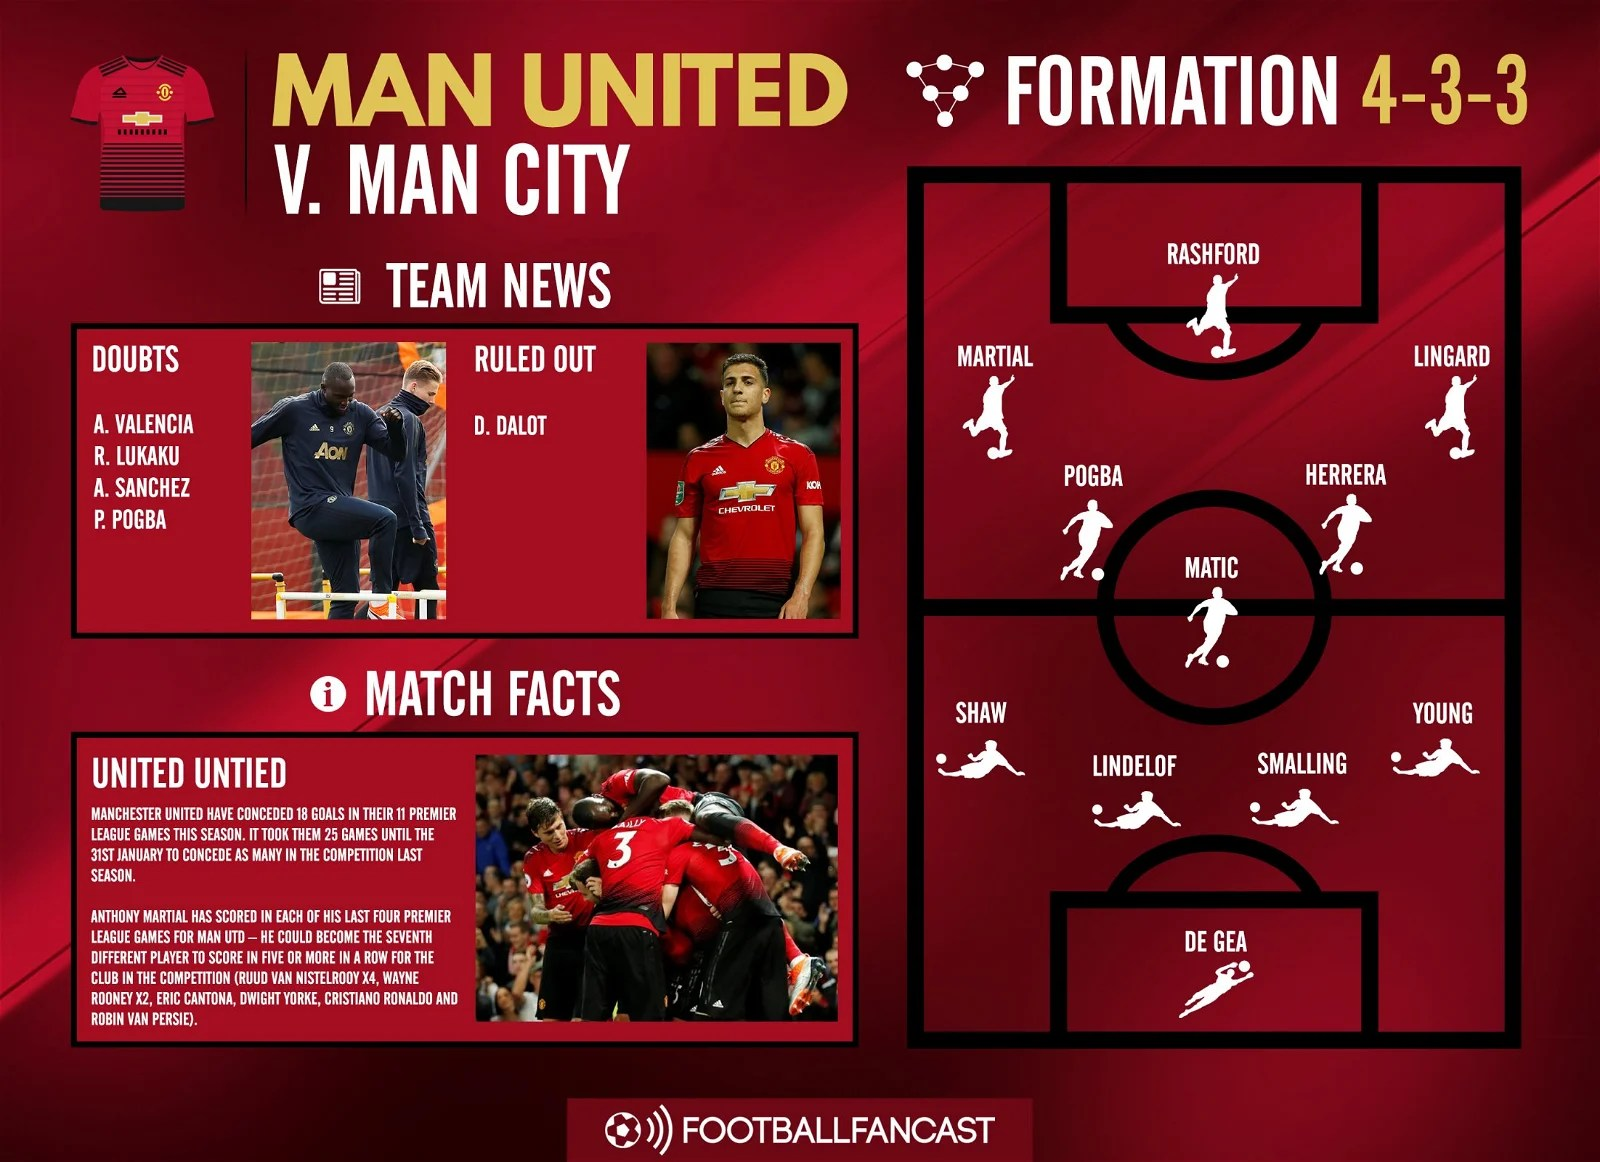 Manchester United team news for Manchester City clash